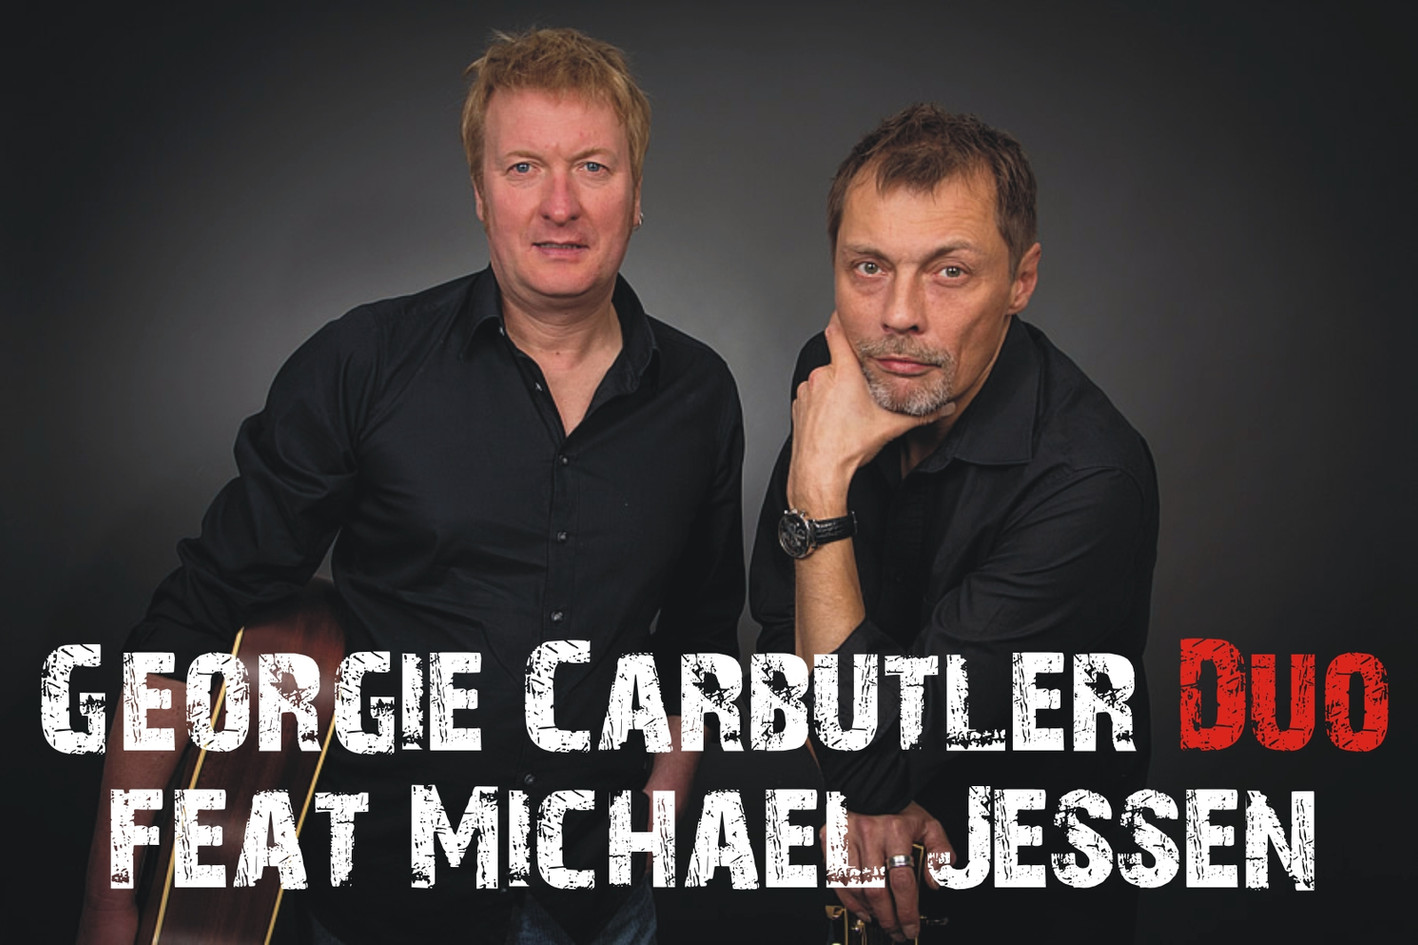 Georgie Carbutler Duo feat Michael Jesse